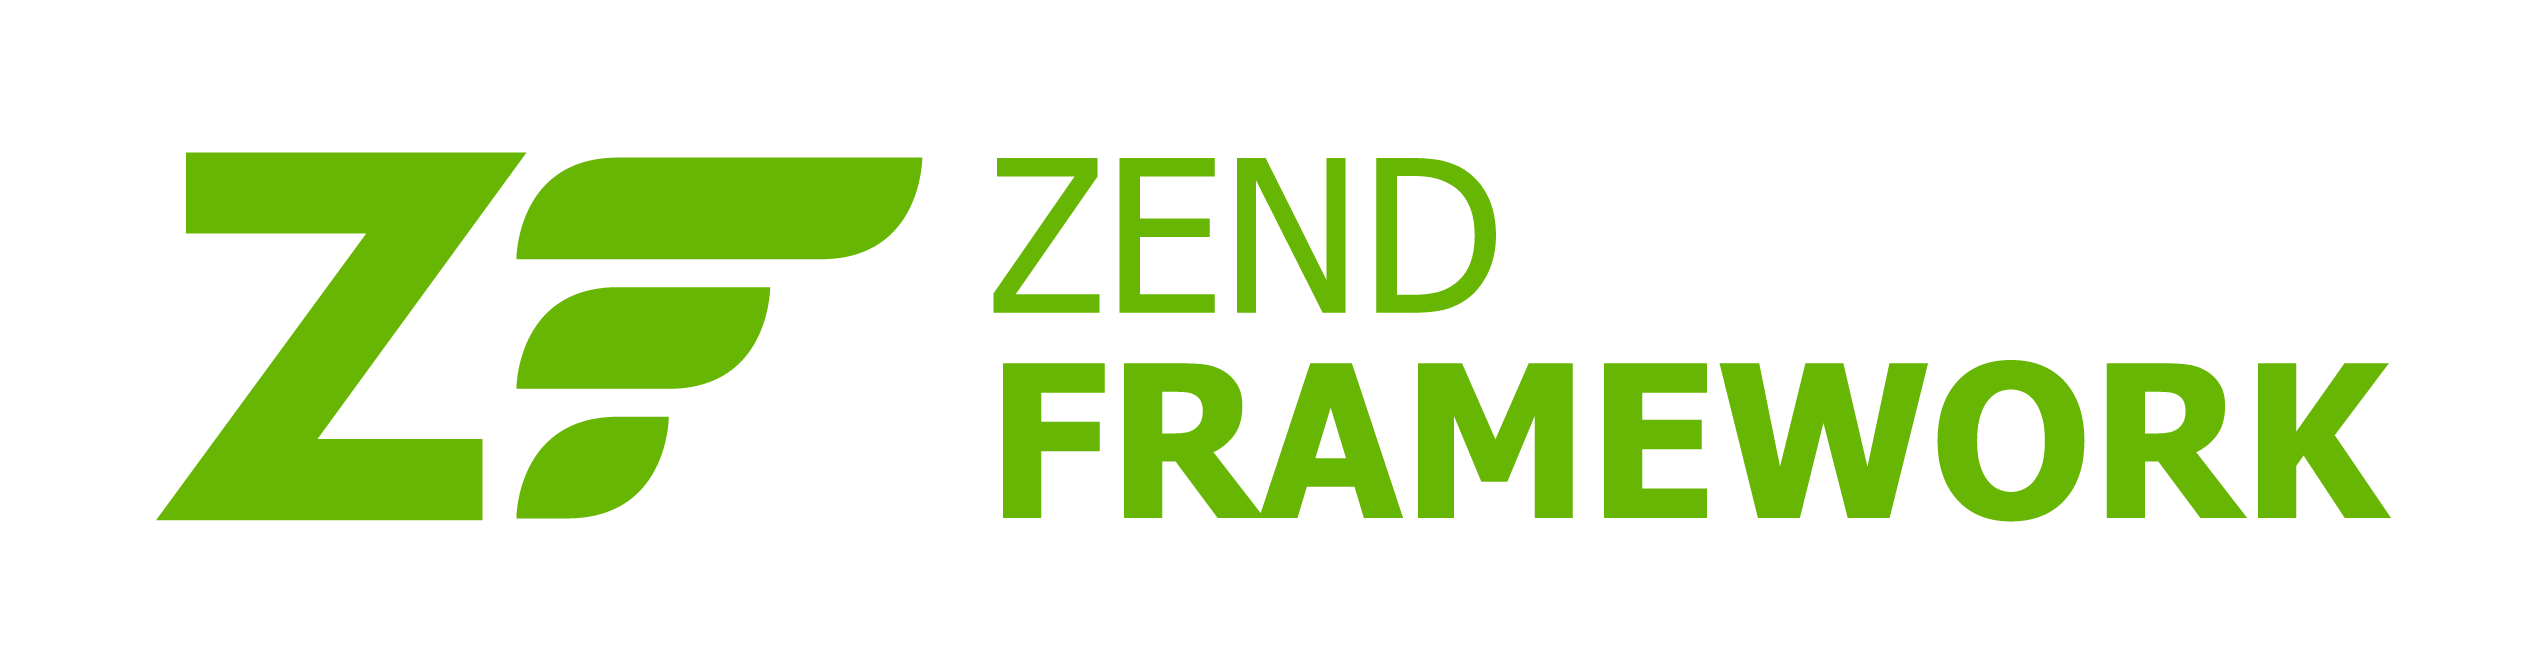 zend php 7 certification study guide